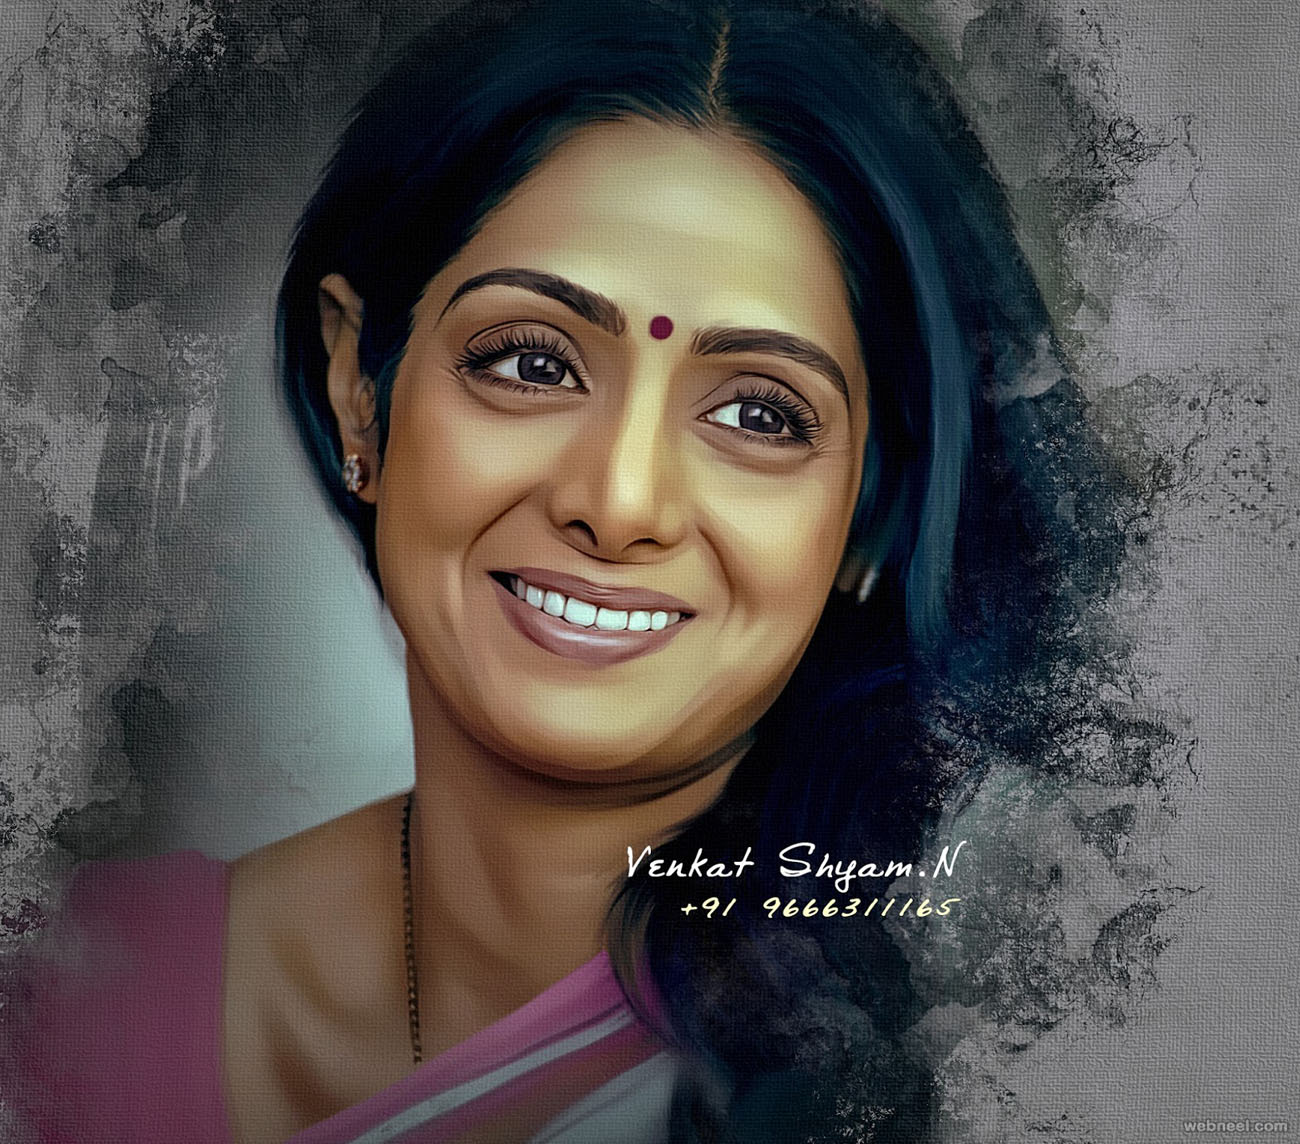 sridevi actress digital painting by venkat shyam